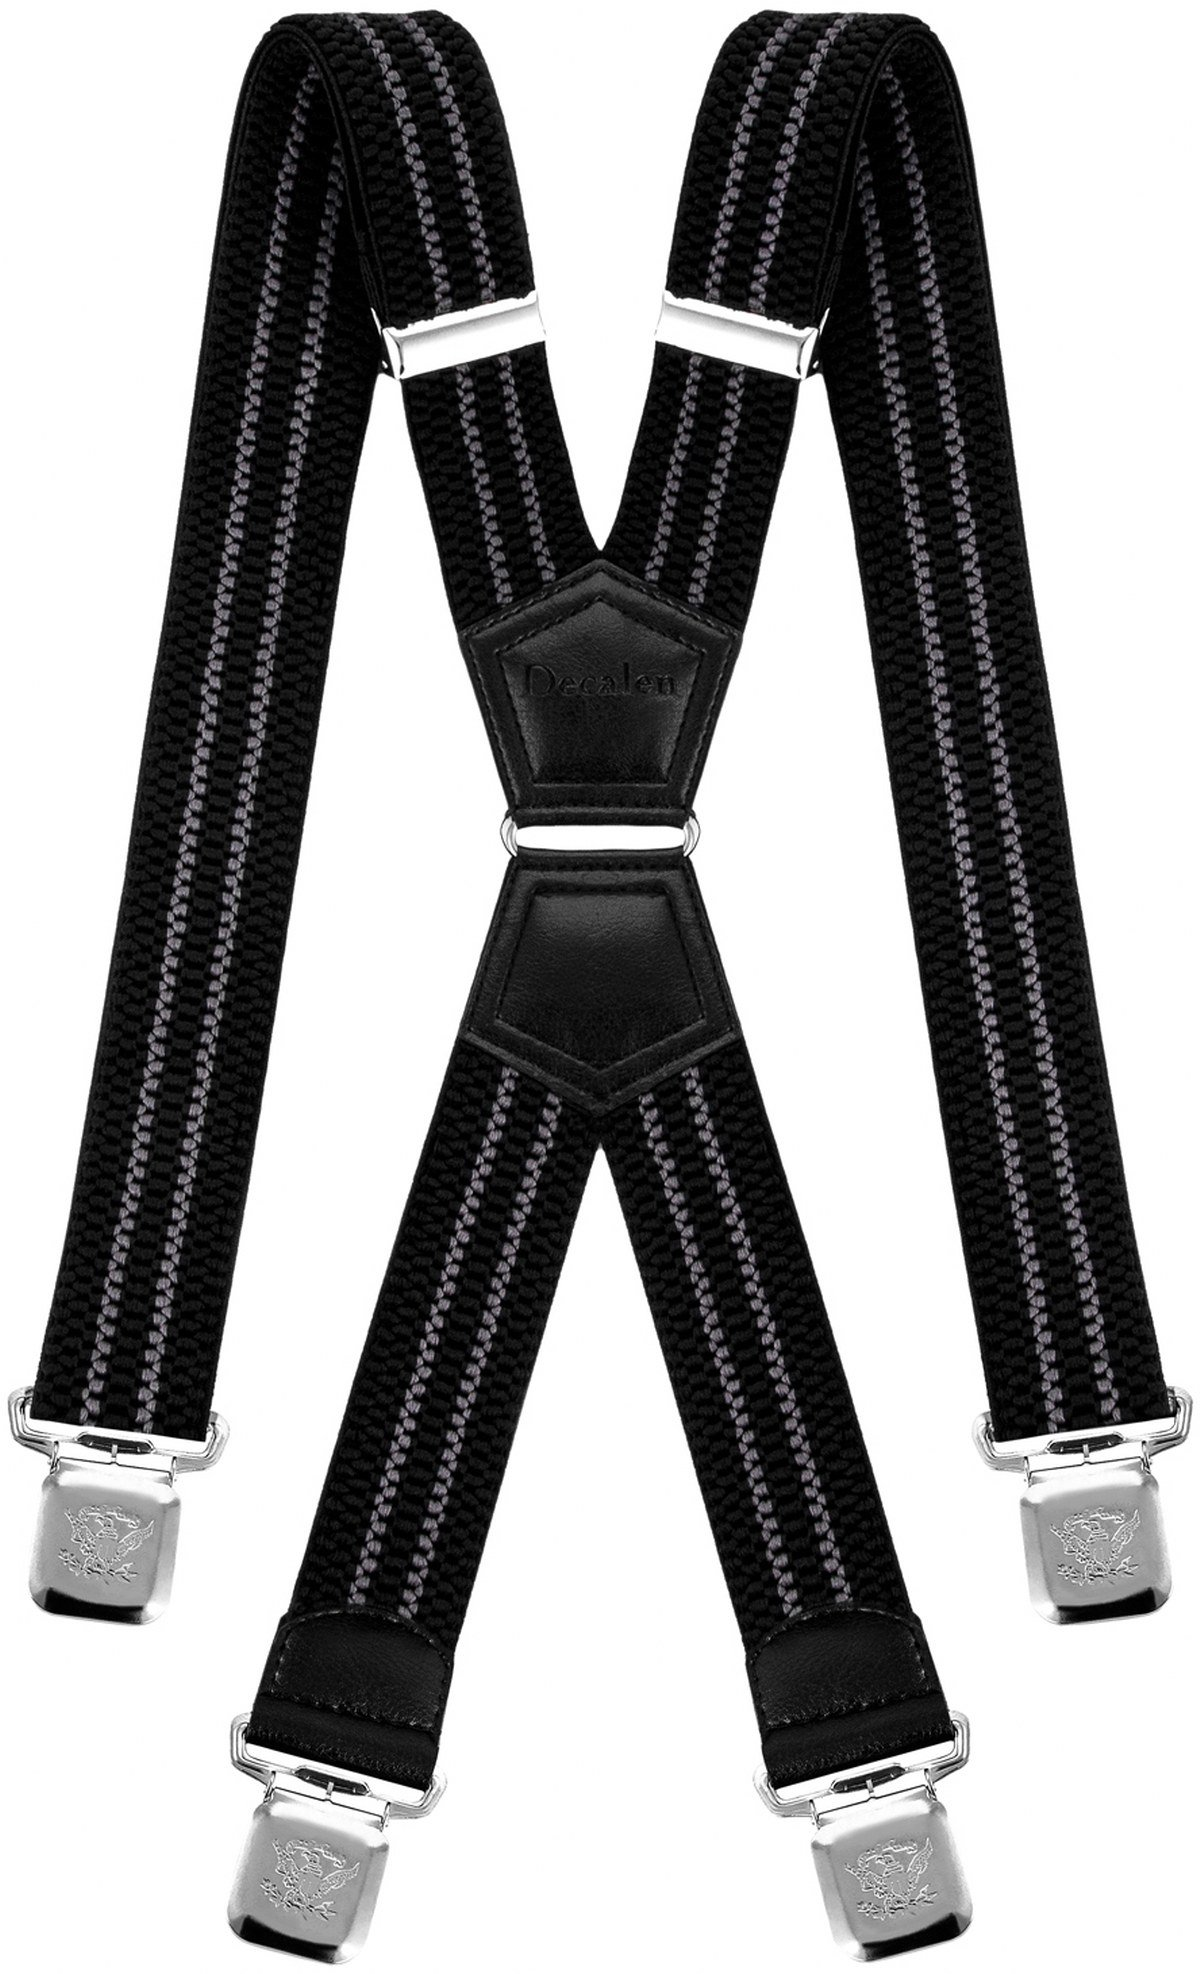 Mens Suspenders X Style Very Strong Clips Adjustable One Size Fits All Heavy Duty Braces (Black - Grey)